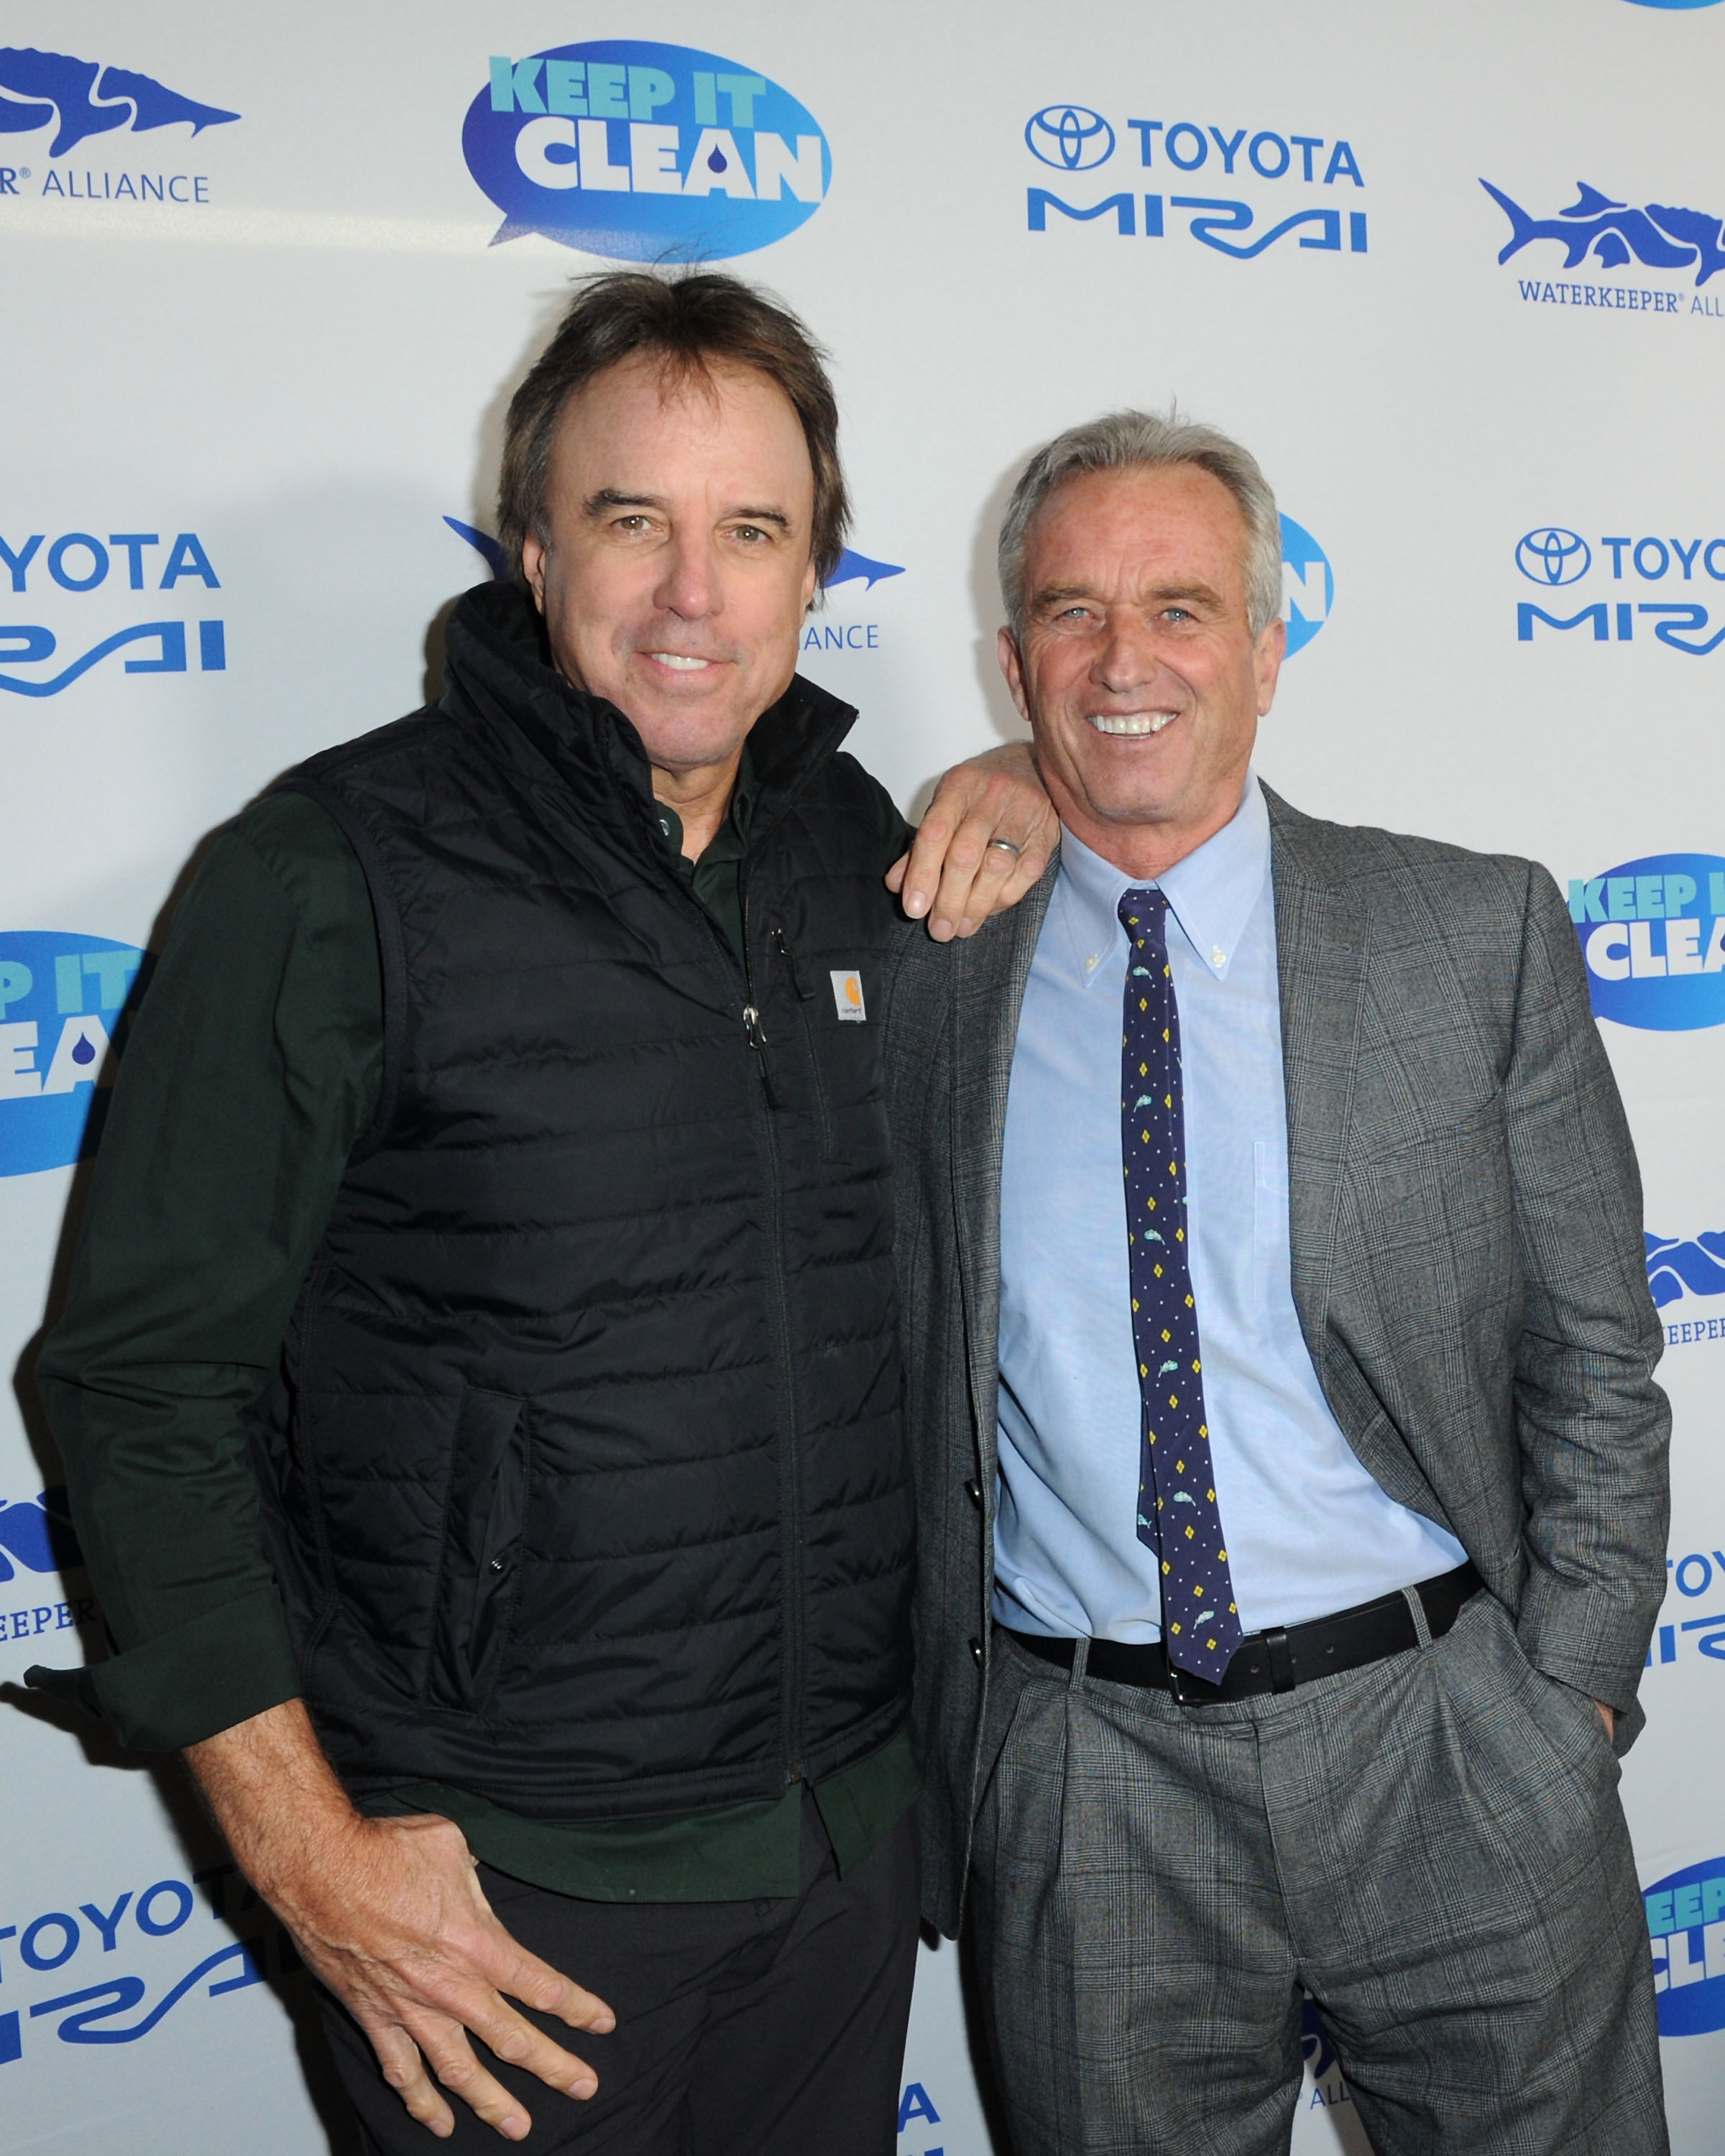 Kevin Nealon (L) and Robert F. Kennedy Jr. attend Keep It Clean Live Comedy To Benefit Waterkeeper Alliance on February 21, 2019 in Los Angeles, California. (Photo by Joshua Blanchard/Getty Images)